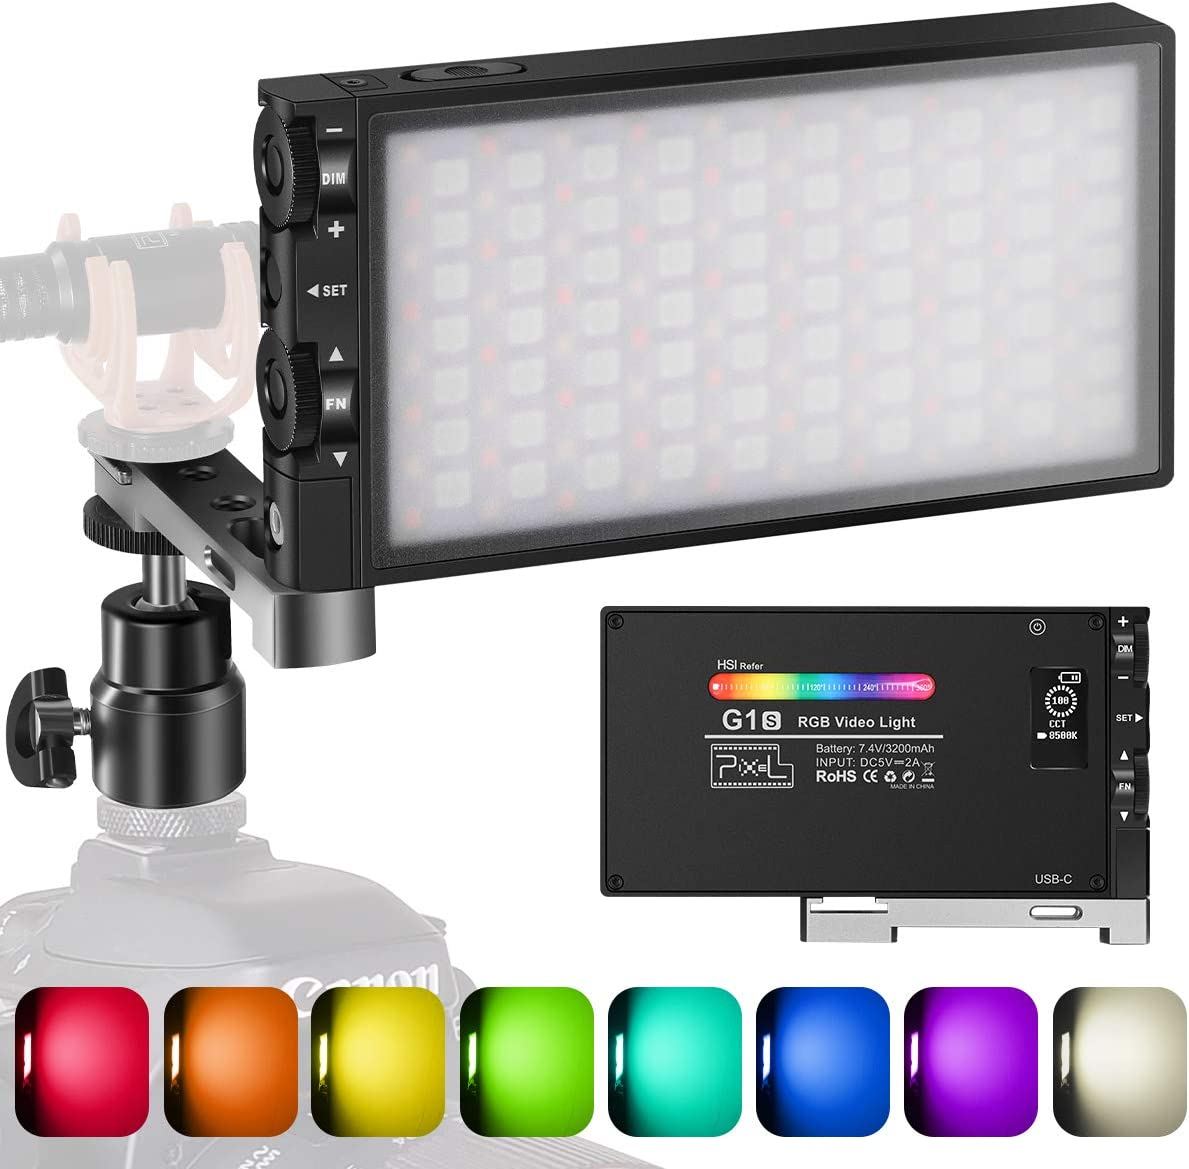 Pixel G1s RGB Video Light, Built-in 12W Rechargeable Battery LED Camera Light 360° Full Color 12 Common Light Effects, CRI≥97 2500-8500K LED Video Light Panel with Aluminum Alloy Body